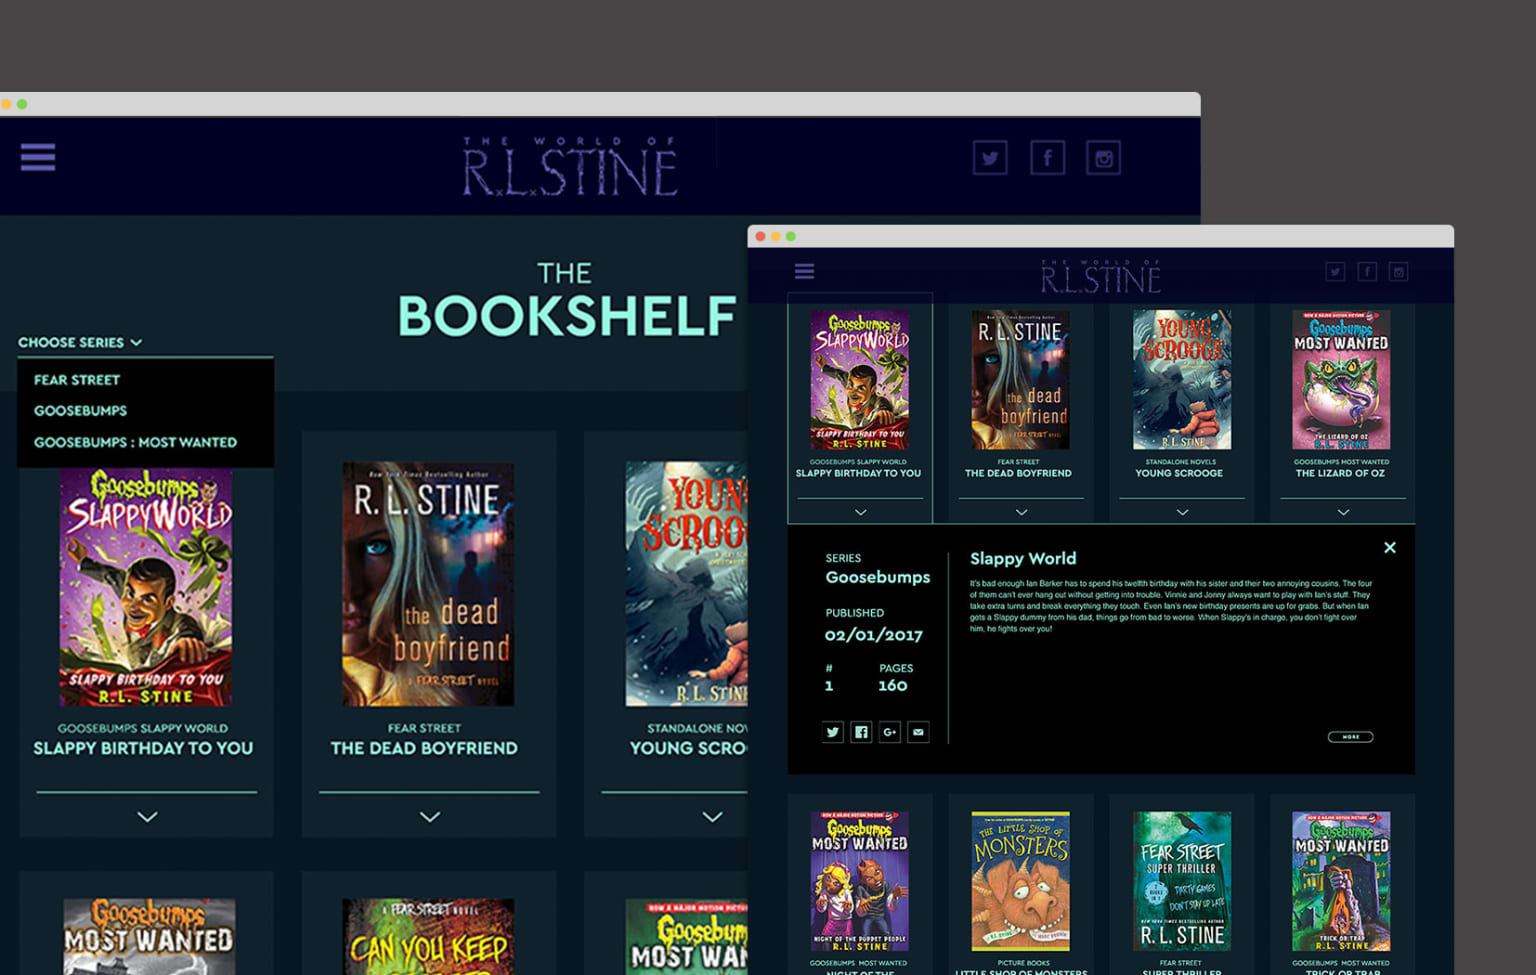 R.L. Stine Identity and Website